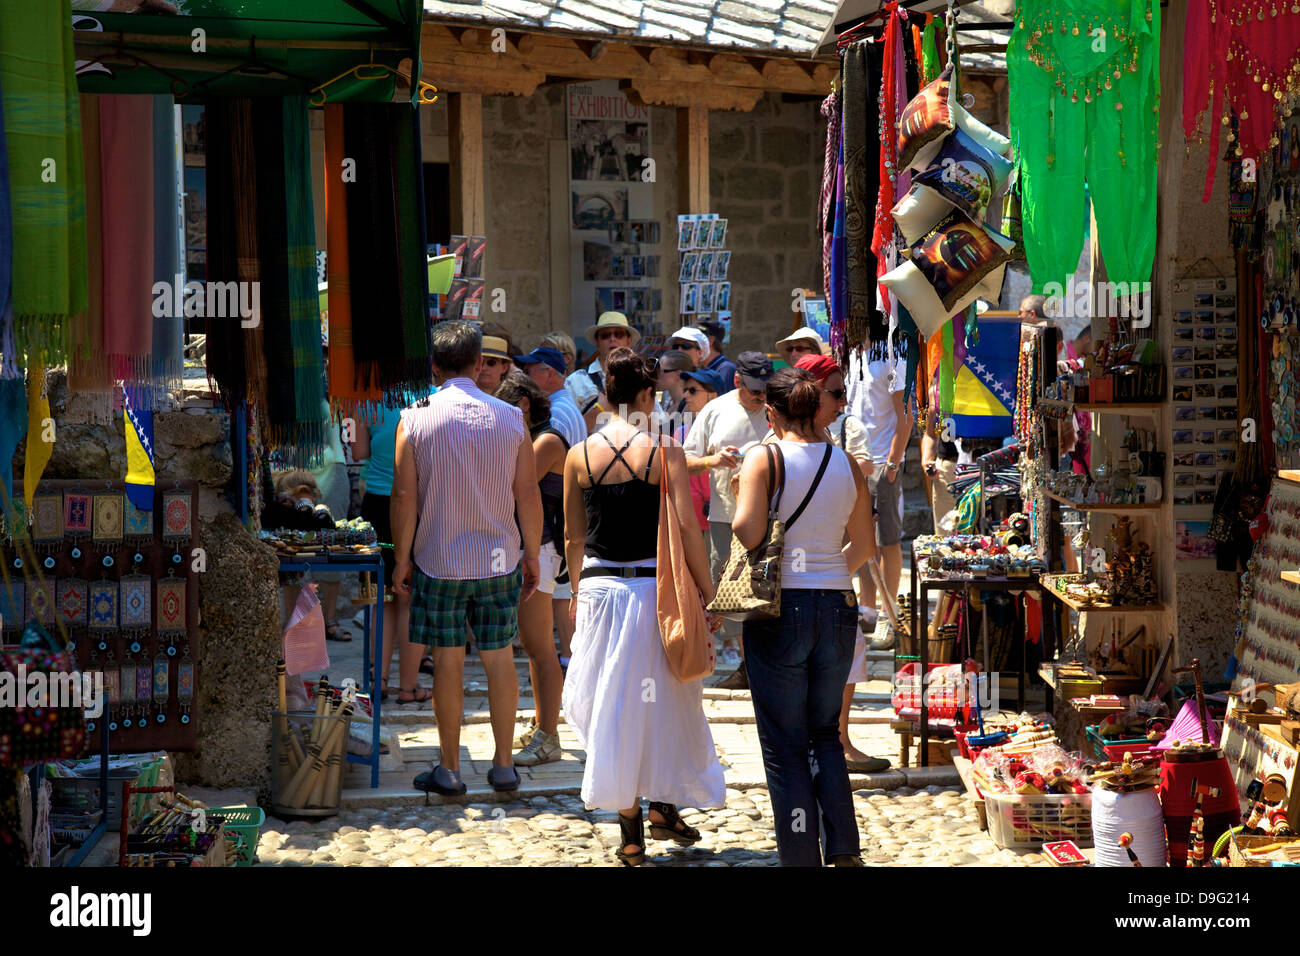 Tourists shopping, Mostar, Bosnia, Bosnia-Herzegovina - Stock Image